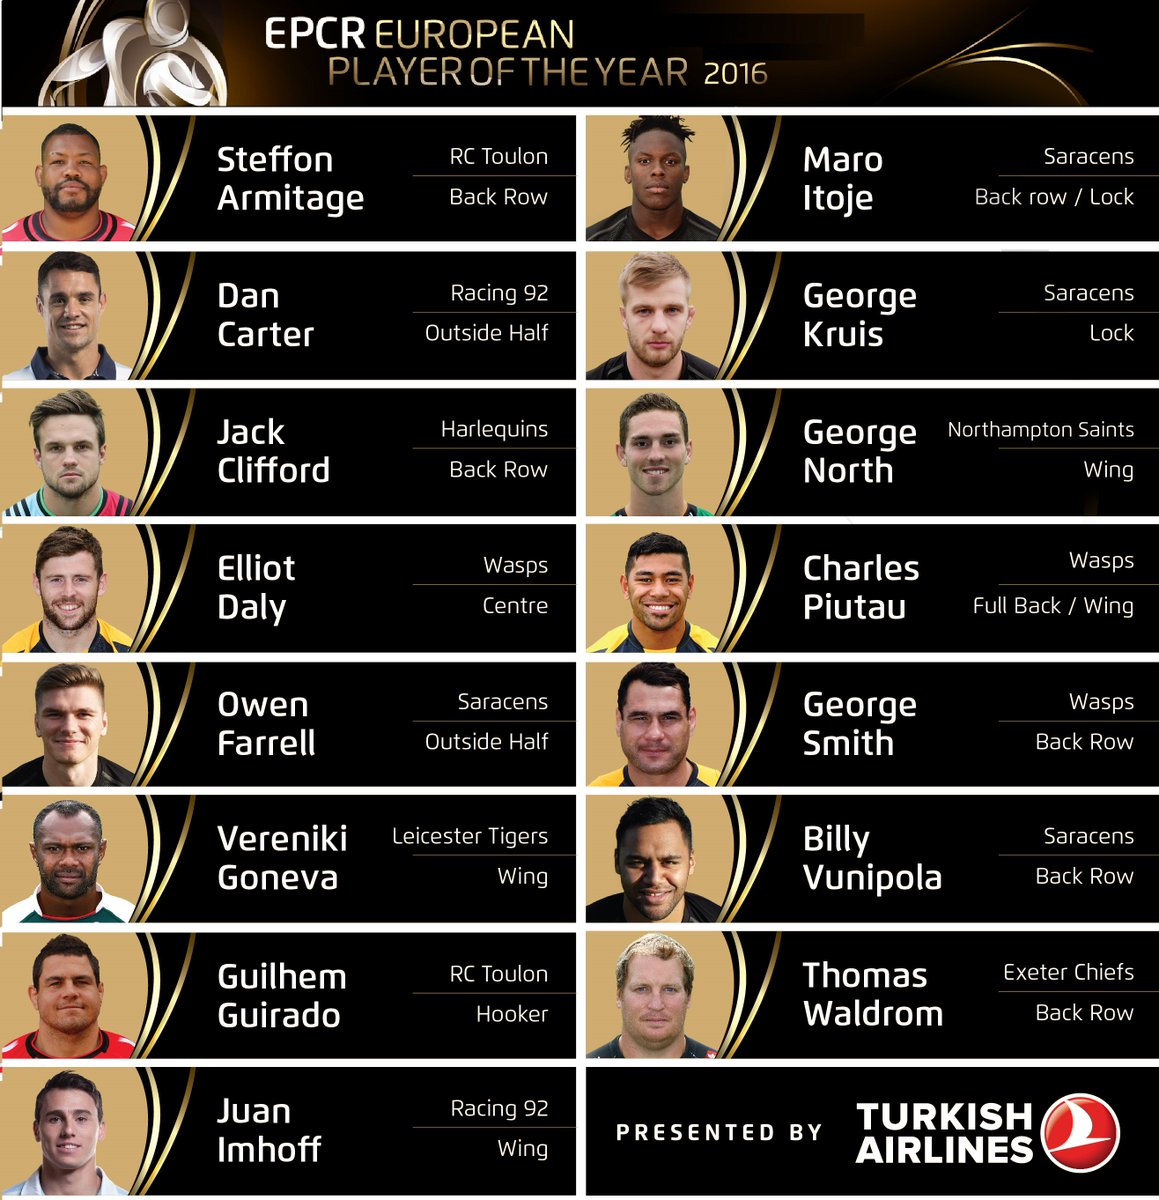 RT @ChampionsCup: Choose the European Player of the Year EPCRplayer2016. Vote now at